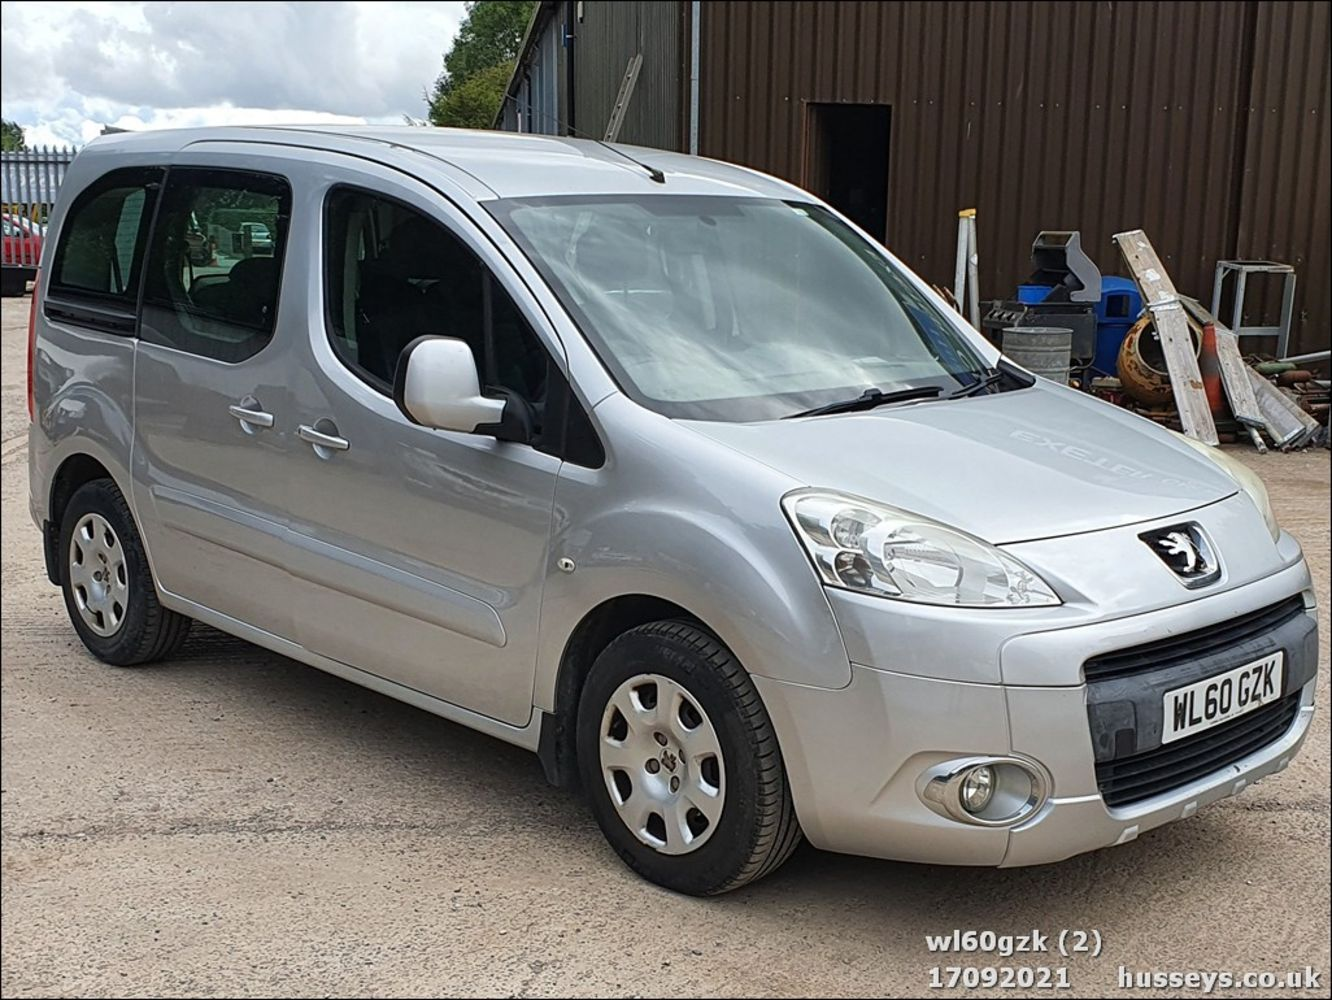 Exeter Car & Commercial Vehicle Auction. Selections of Cars, Vans, Light Commercials, 4x4s, MPVs.  Entries from Trade, Business & Private Etc.